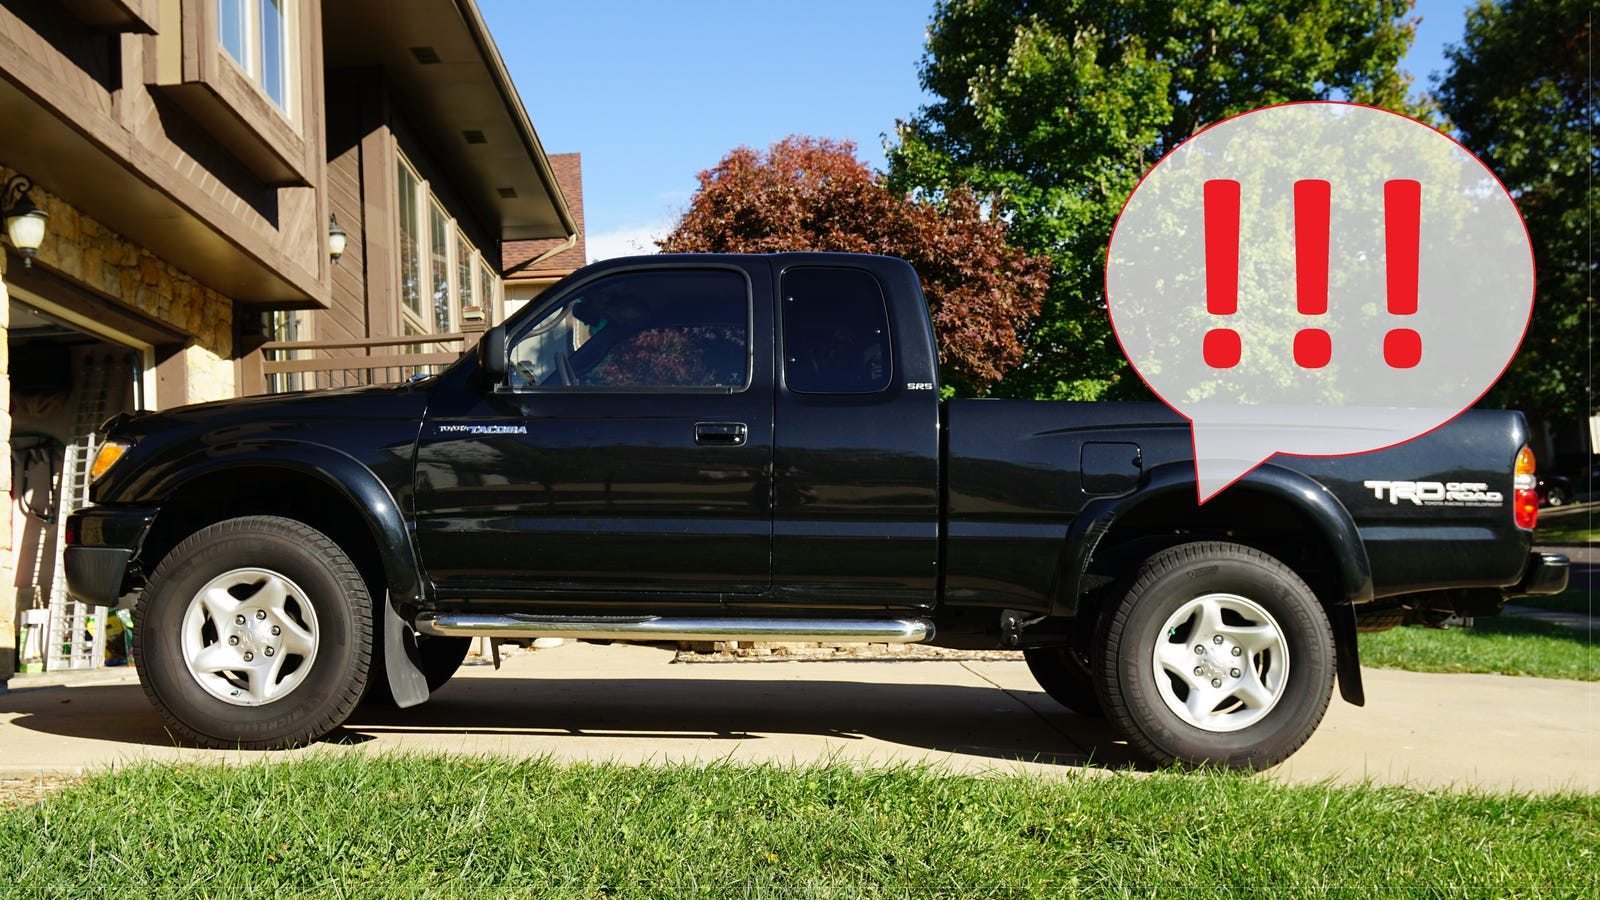 Heres How To Fix The Rear End Of An Old Toyota Tacoma Pickup Starting Problems